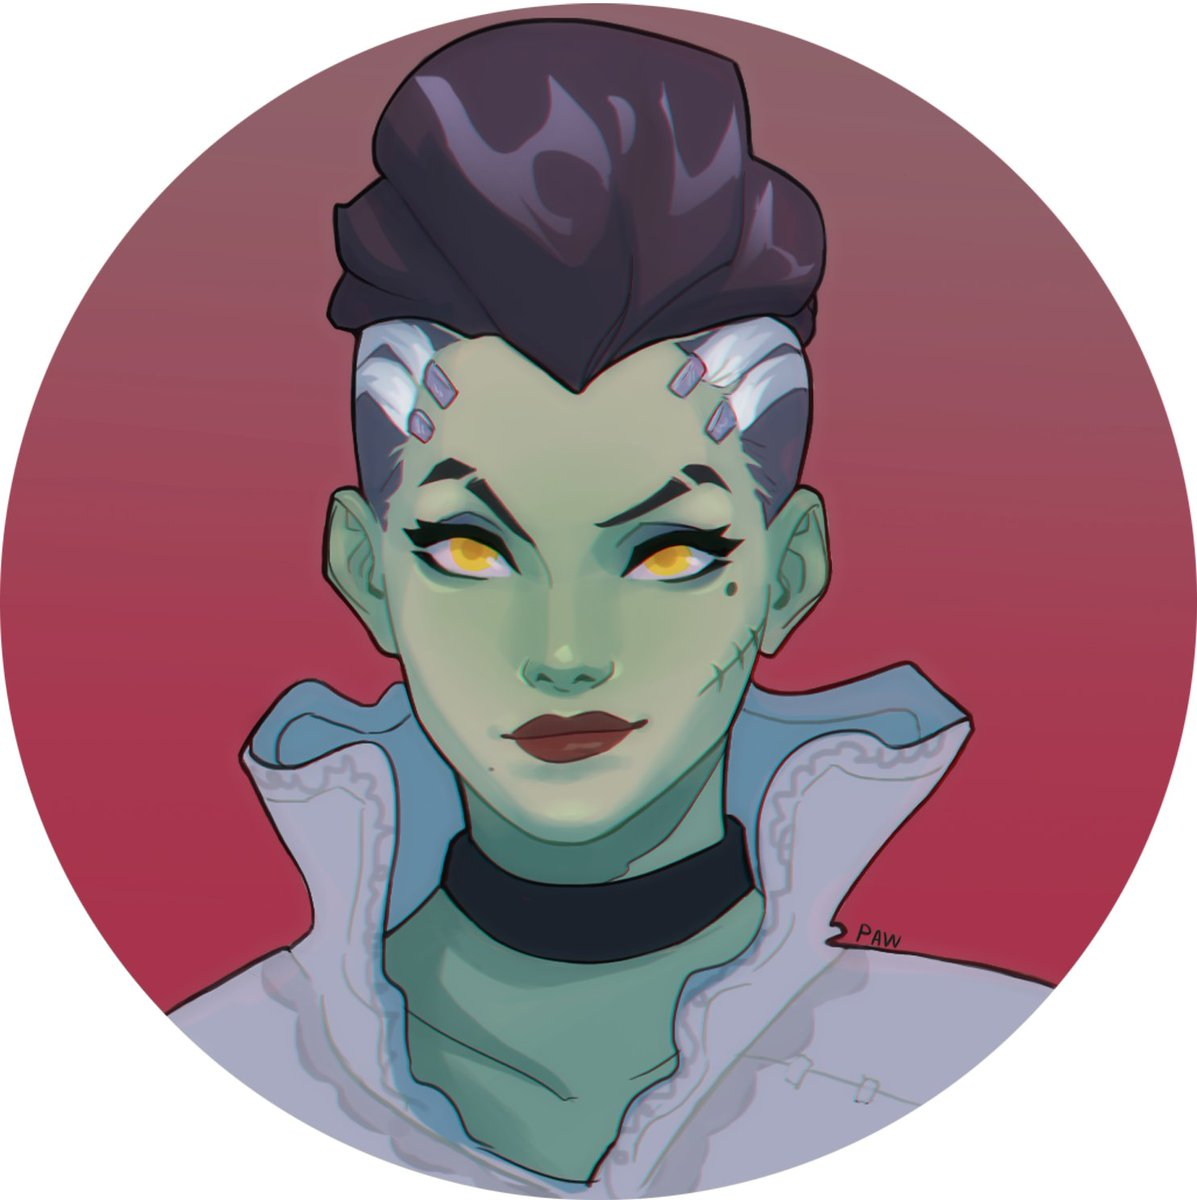 @pawleena1: new Sombra icon! I really liked that skinnnn y'all 💖😩 https://t.co/c0STjiRqQt